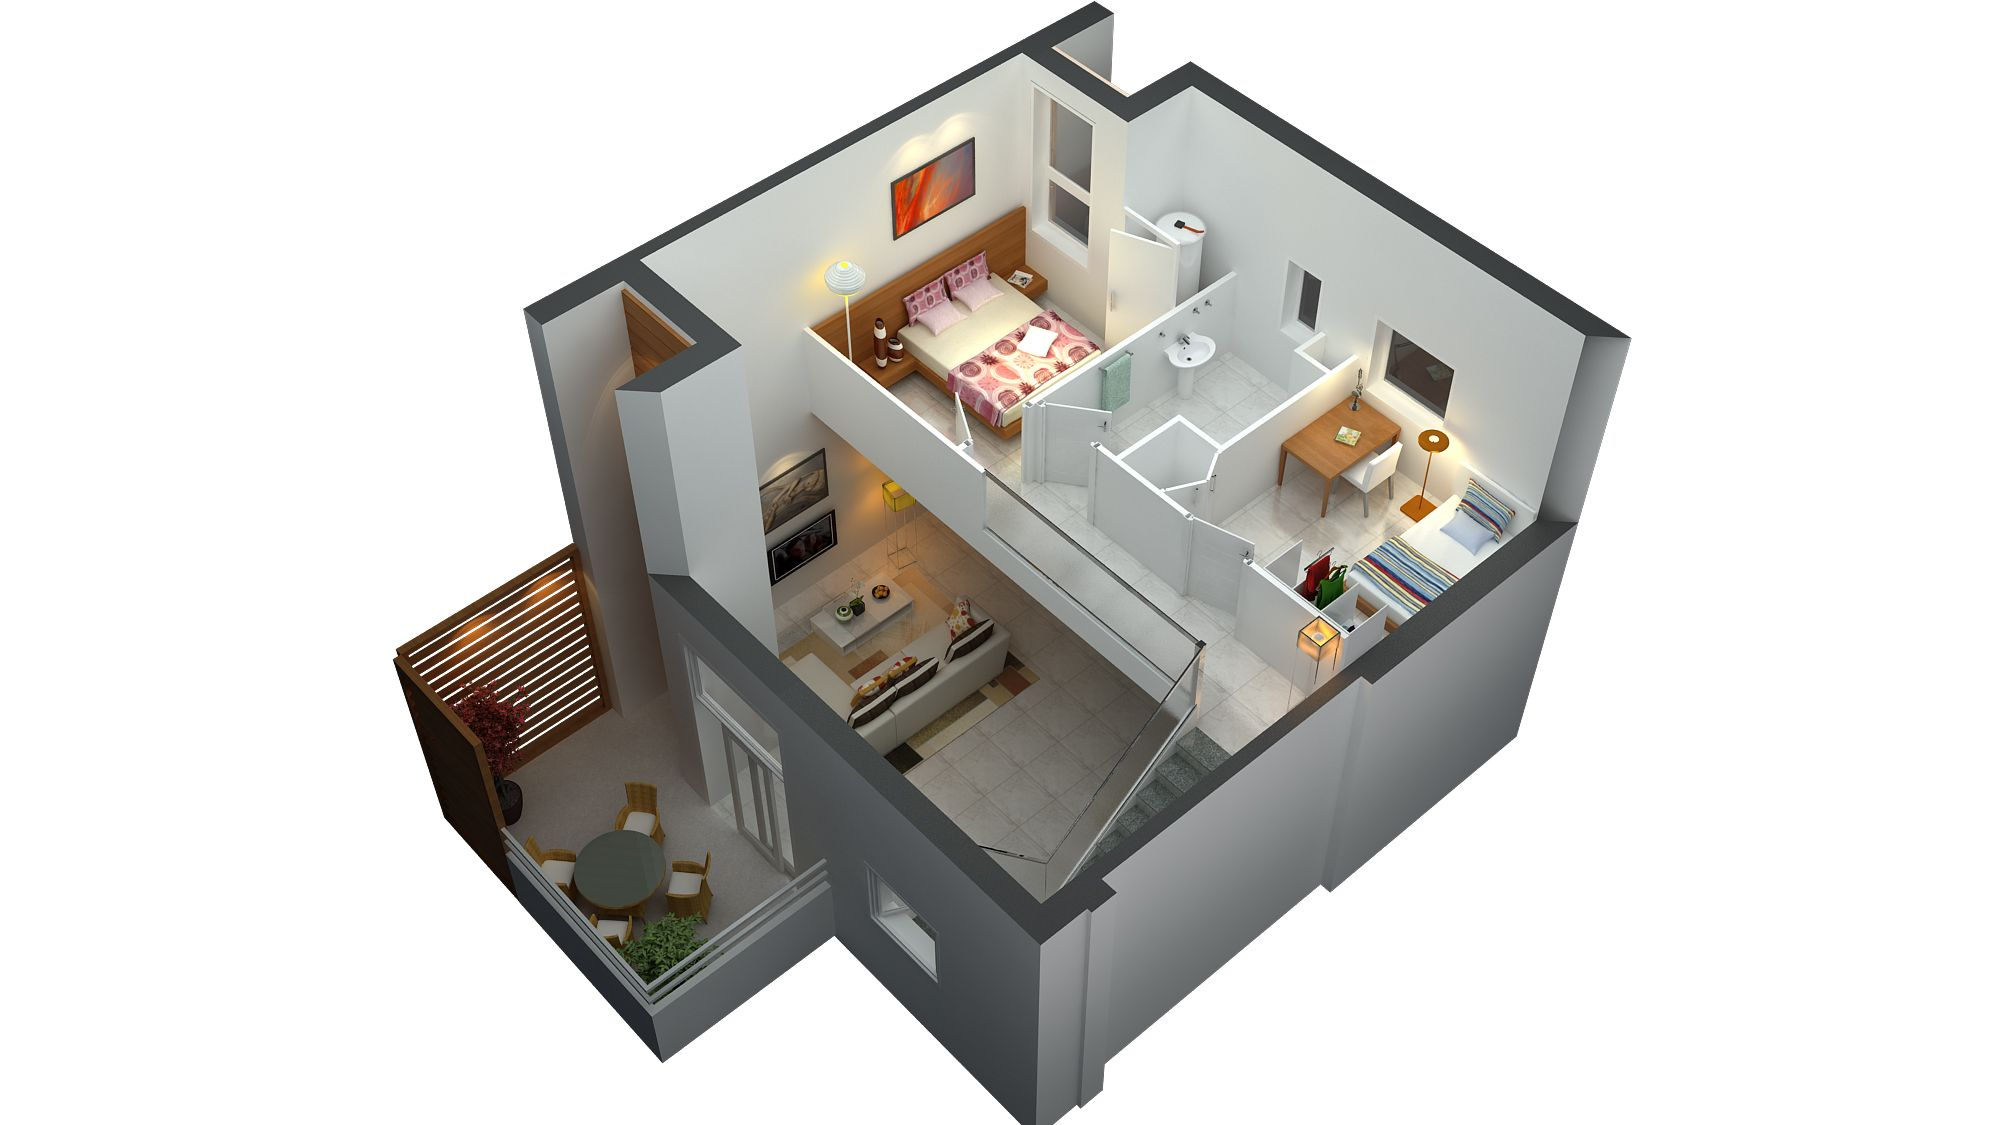 3d floor plan small house plans pinterest 3d for 2 bedroom house plans 3d